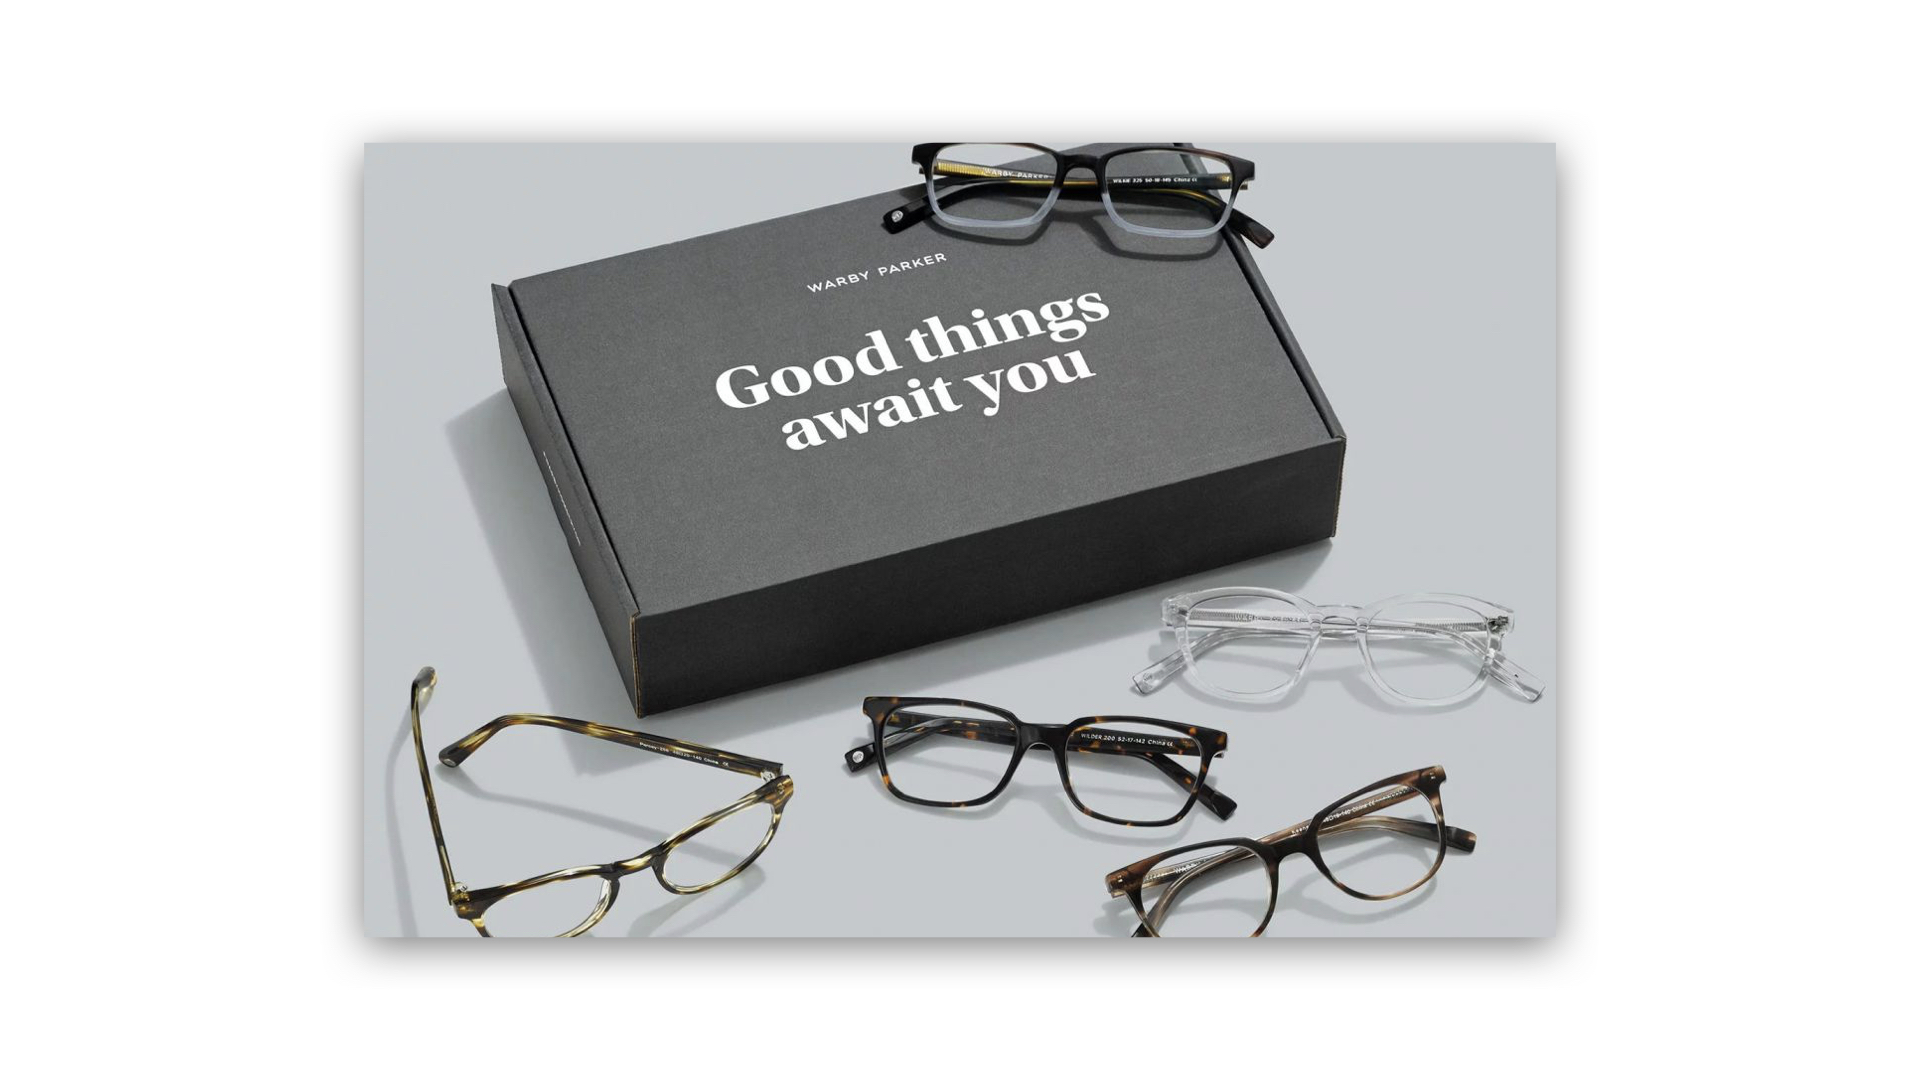 G & Co. is a DTC marketing agency: Warby Parker's Home Try-On Program is what sets it apart from traditional eyewear brands